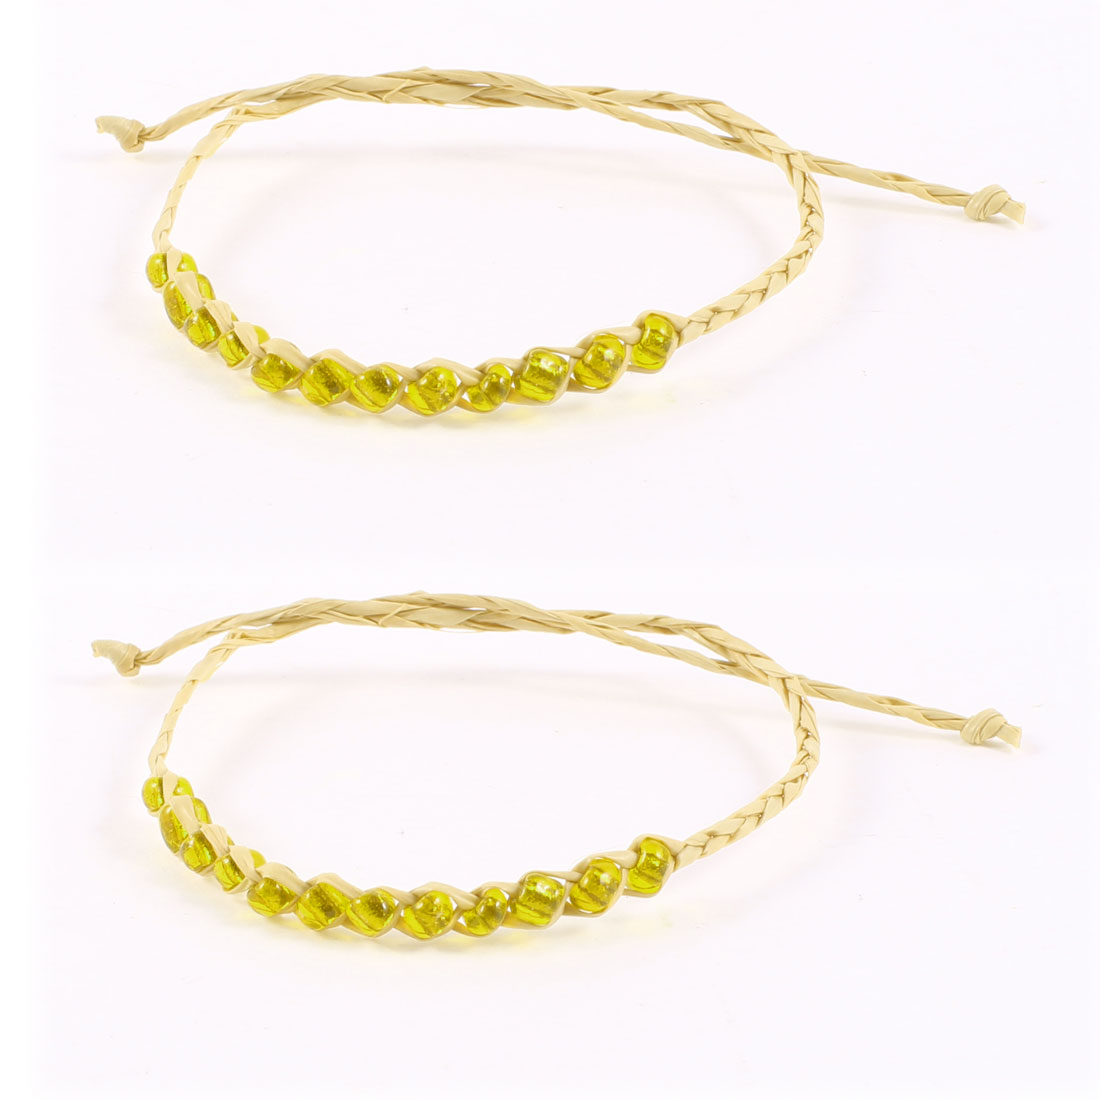 2 Pcs Yellow Beige Glistening Beads Decor Straw Wrist Bracelets for Girl